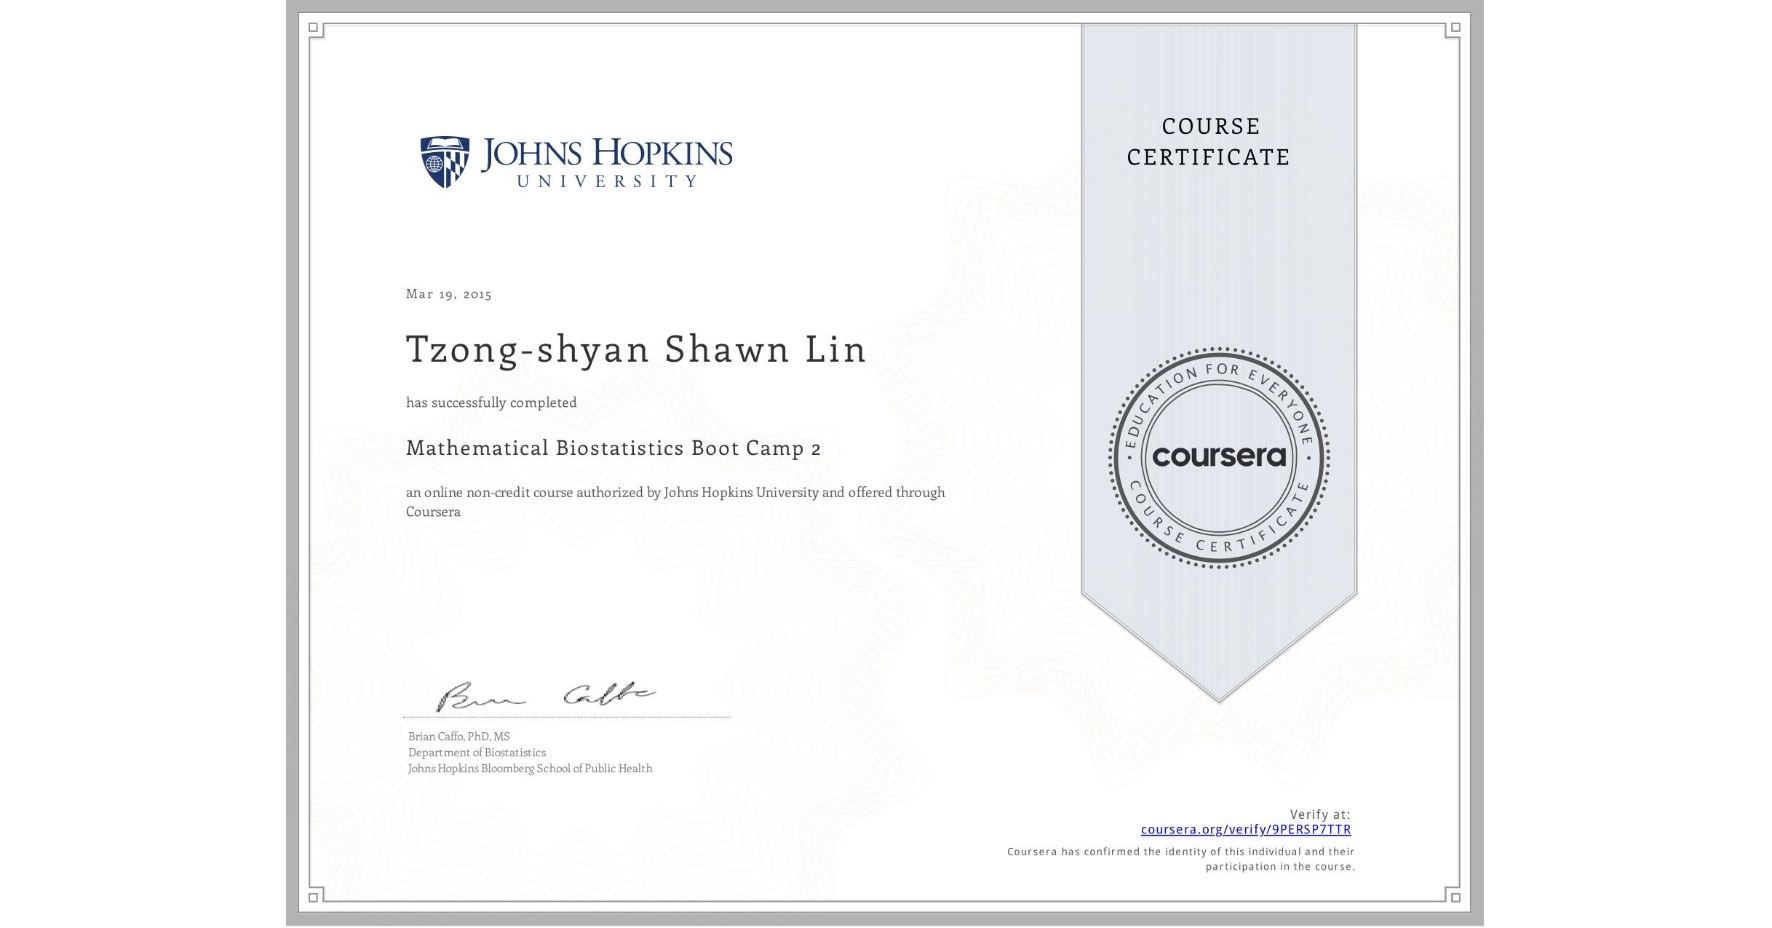 View certificate for Tzong-shyan Shawn Lin, Mathematical Biostatistics Boot Camp 2, an online non-credit course authorized by Johns Hopkins University and offered through Coursera